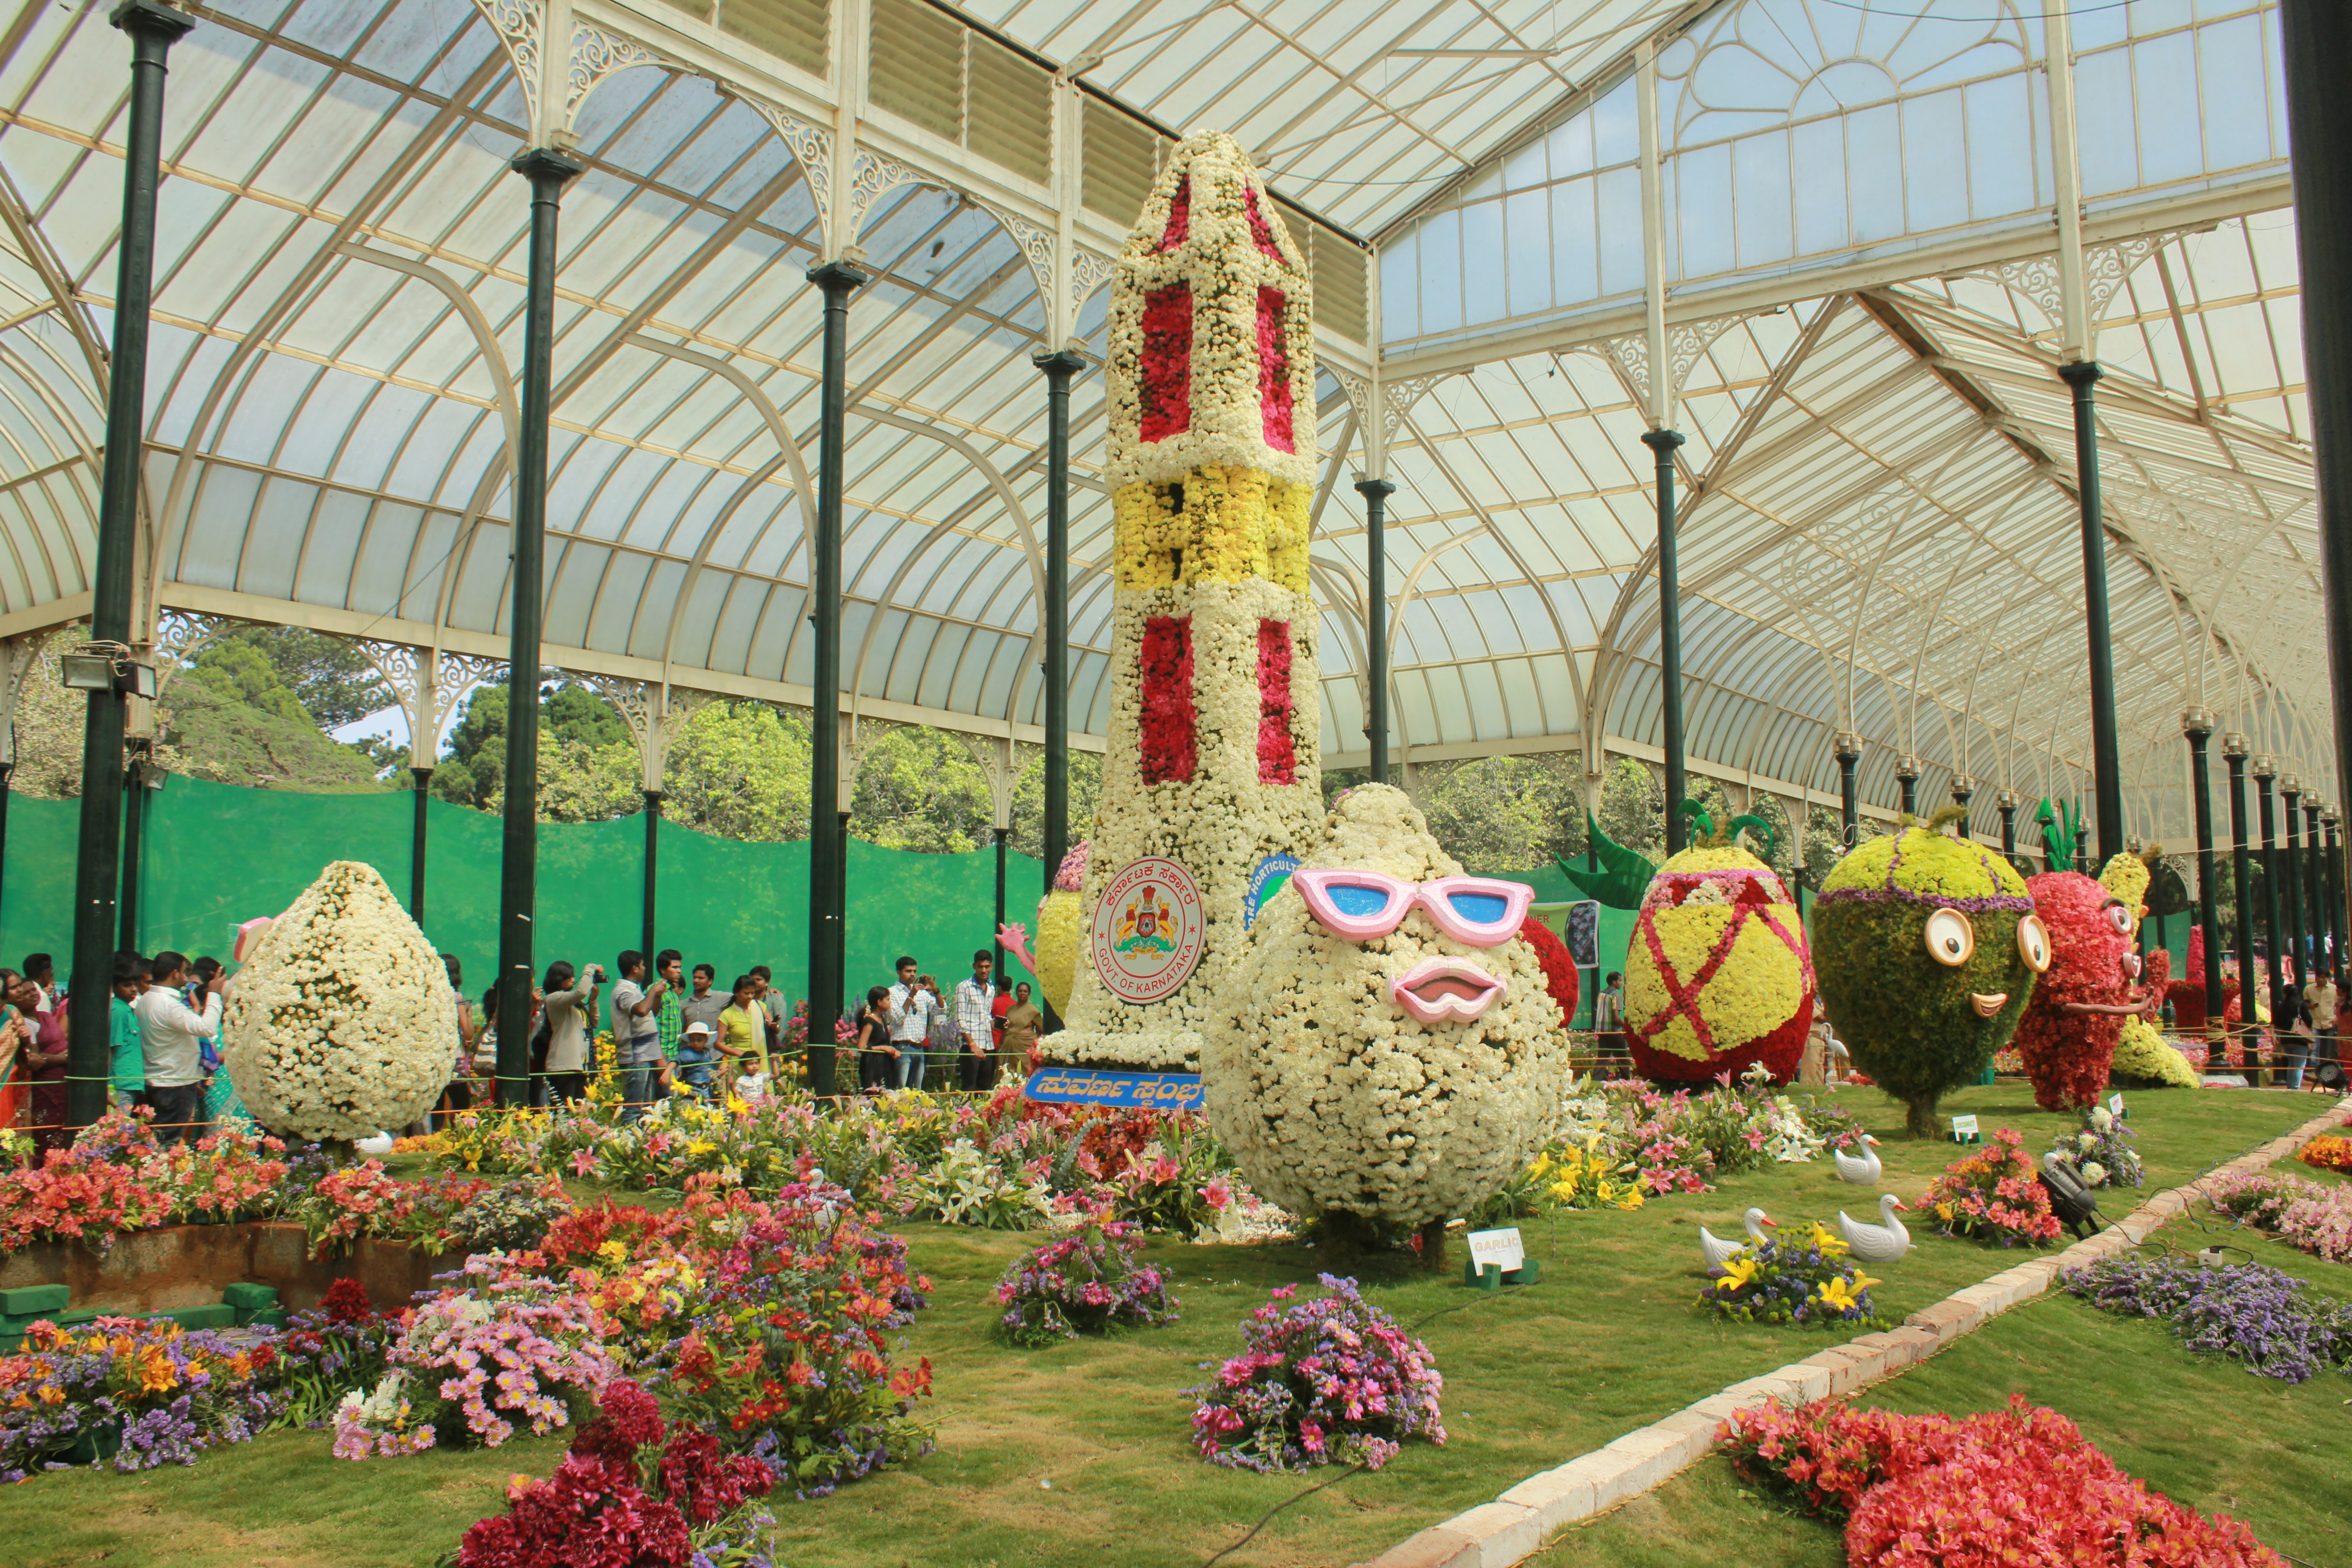 14ab8710fdb8 Cute floral replicas of veggies and fruits greet visitors to the Republic  Day Flower Show at the Glass House in Lal Bagh. They are a hit with  children!